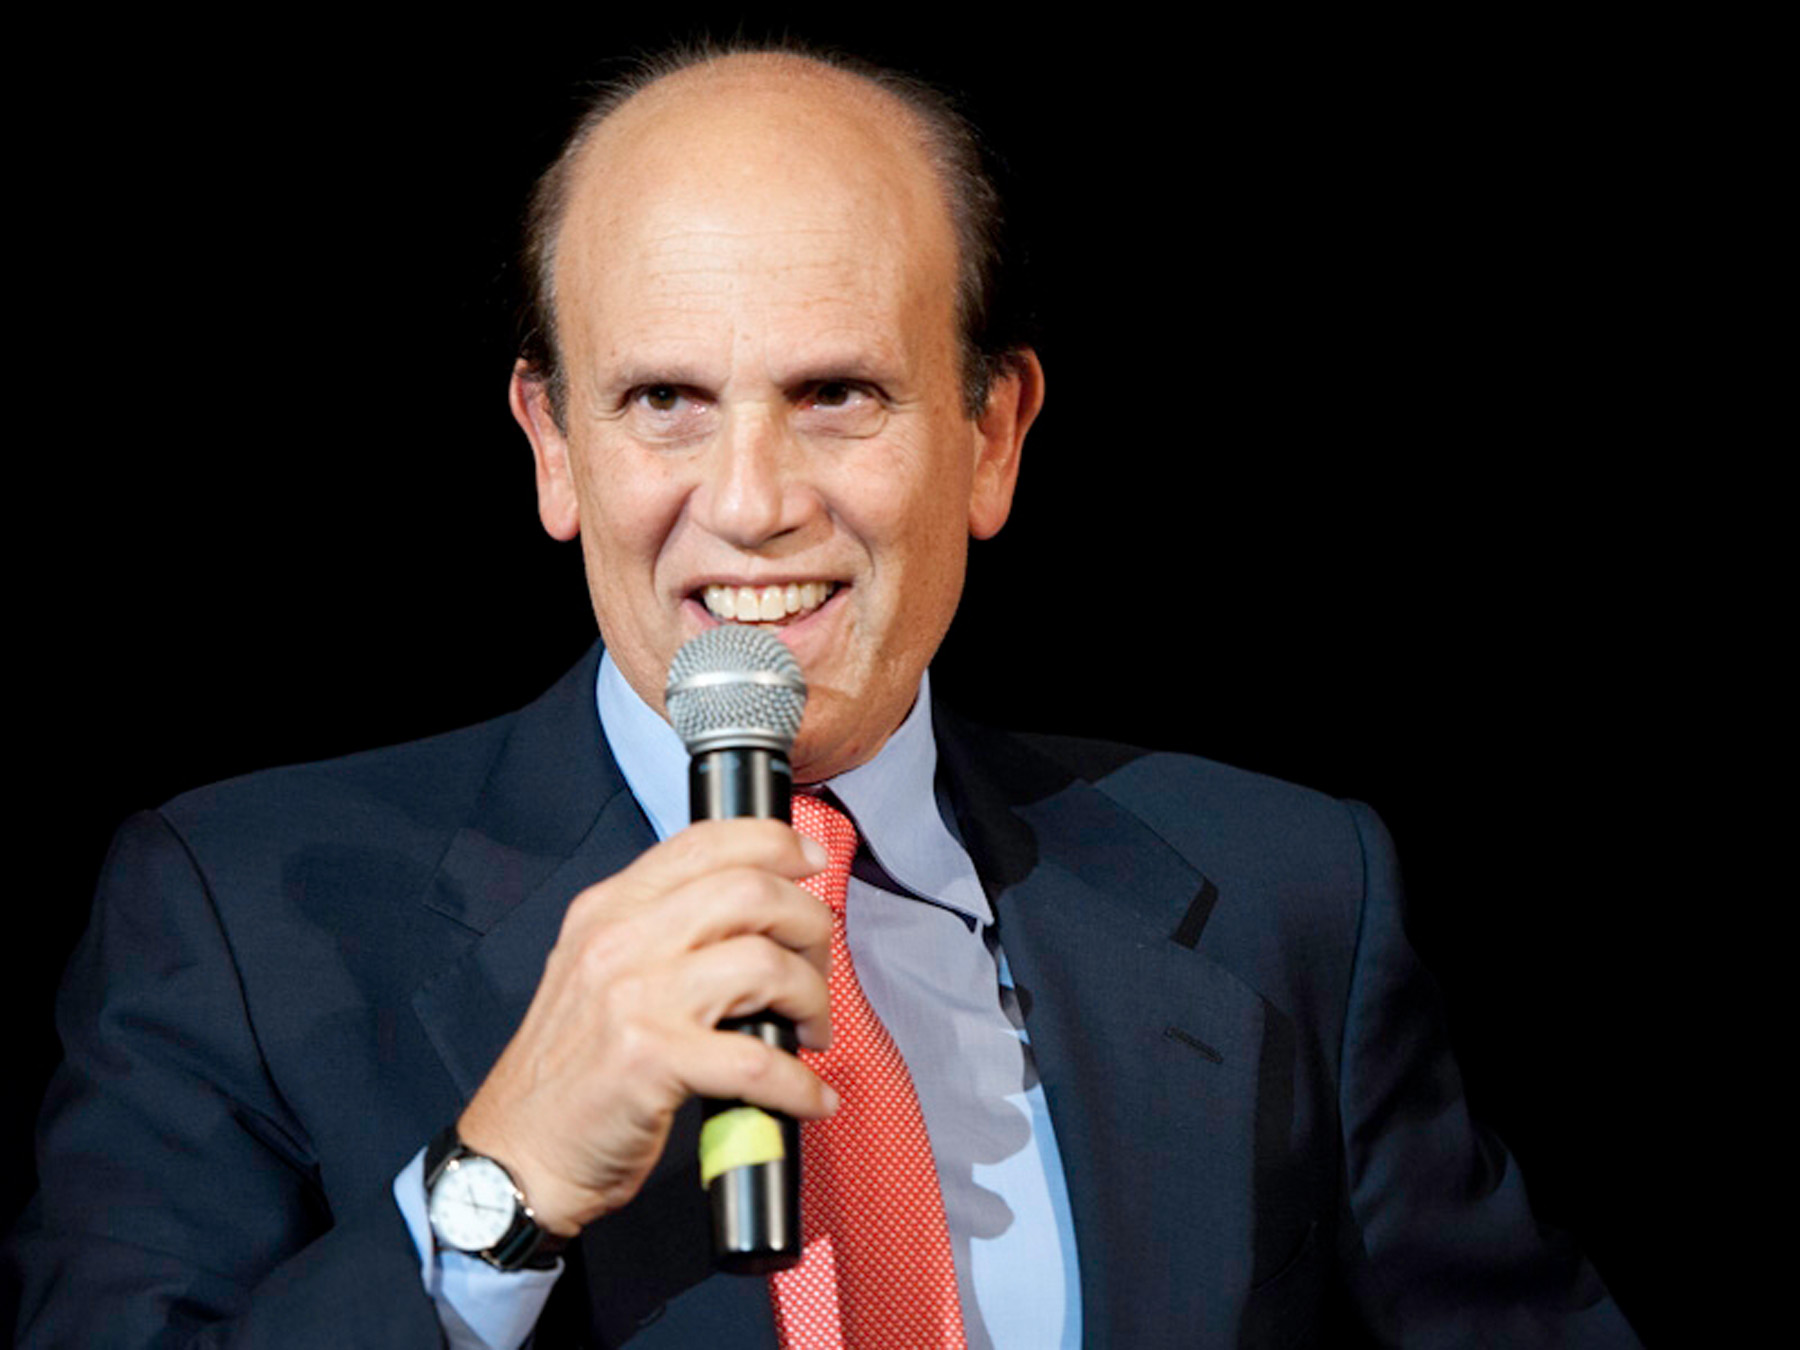 """micheal milken On this date, november 21, in the year 1990, michael milken, who was know as the """"junk bond king"""", was sentenced to ten year in prison for financial and security fraud violations."""